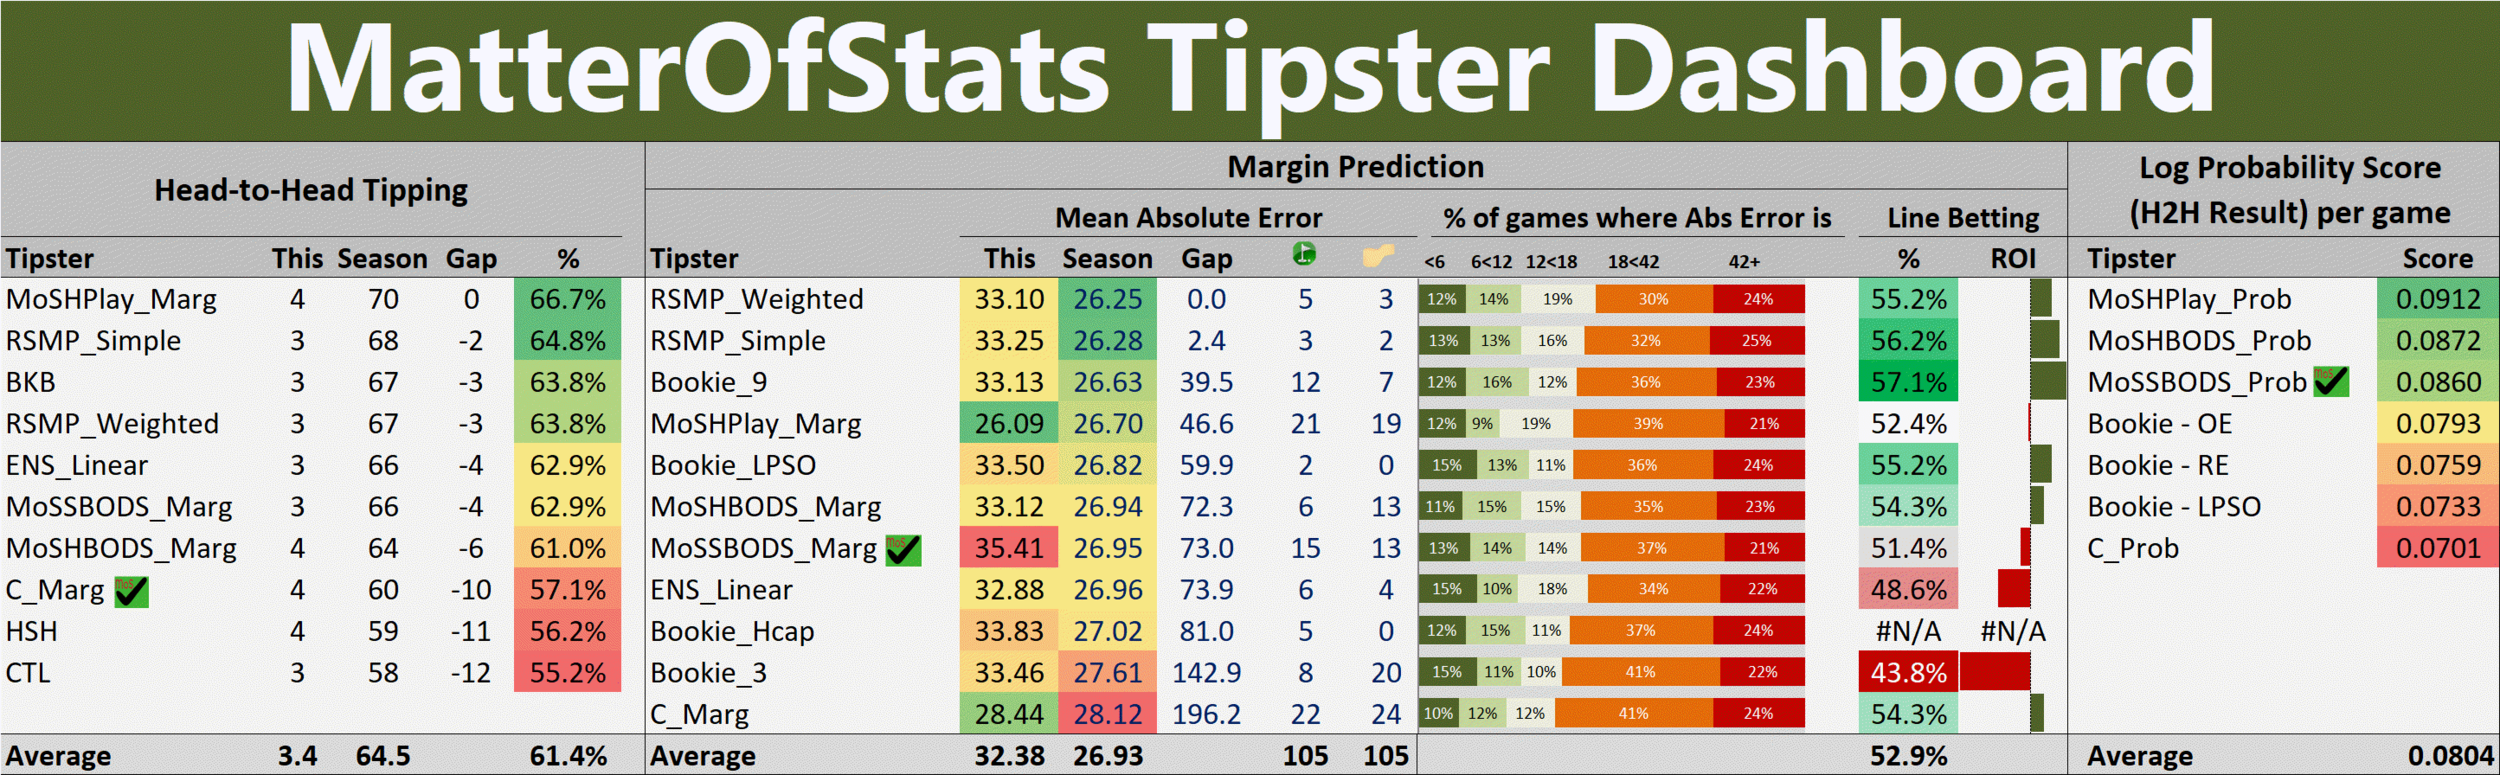 R12 - Tipster Dashboard.png